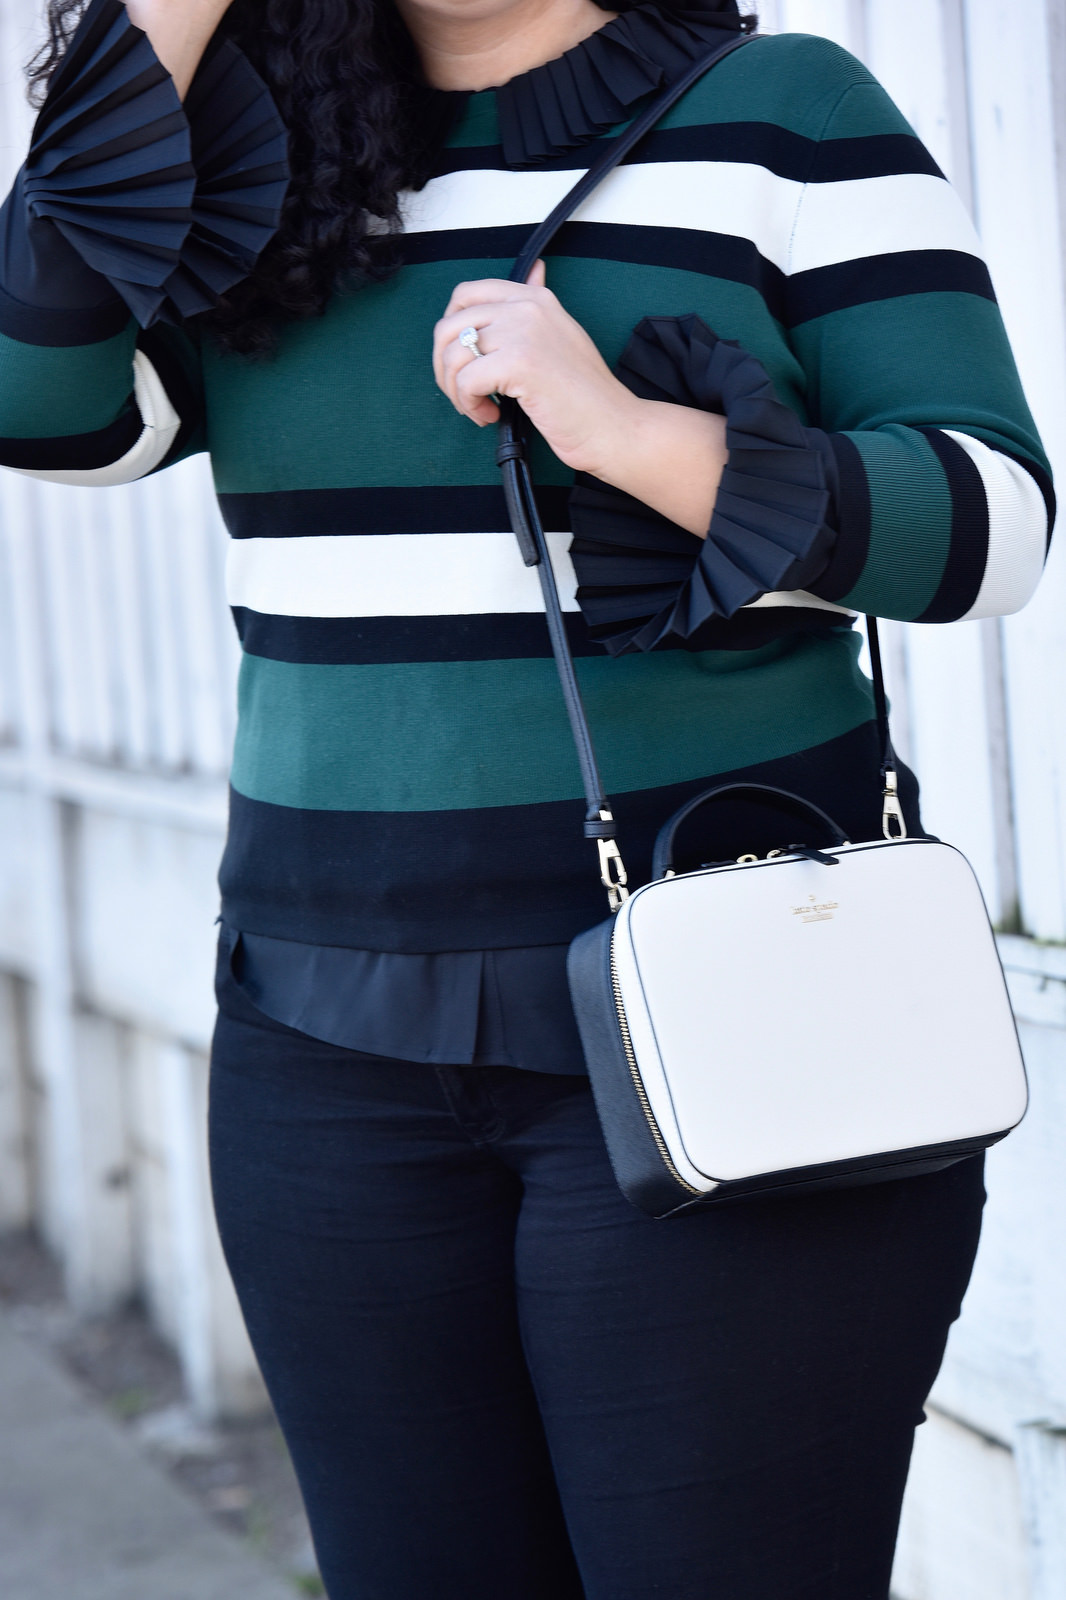 Sweater from Asos, Top from Eloquii, Pants from Old Navy, Bag from Kate Spade Via @GirlWithCurves